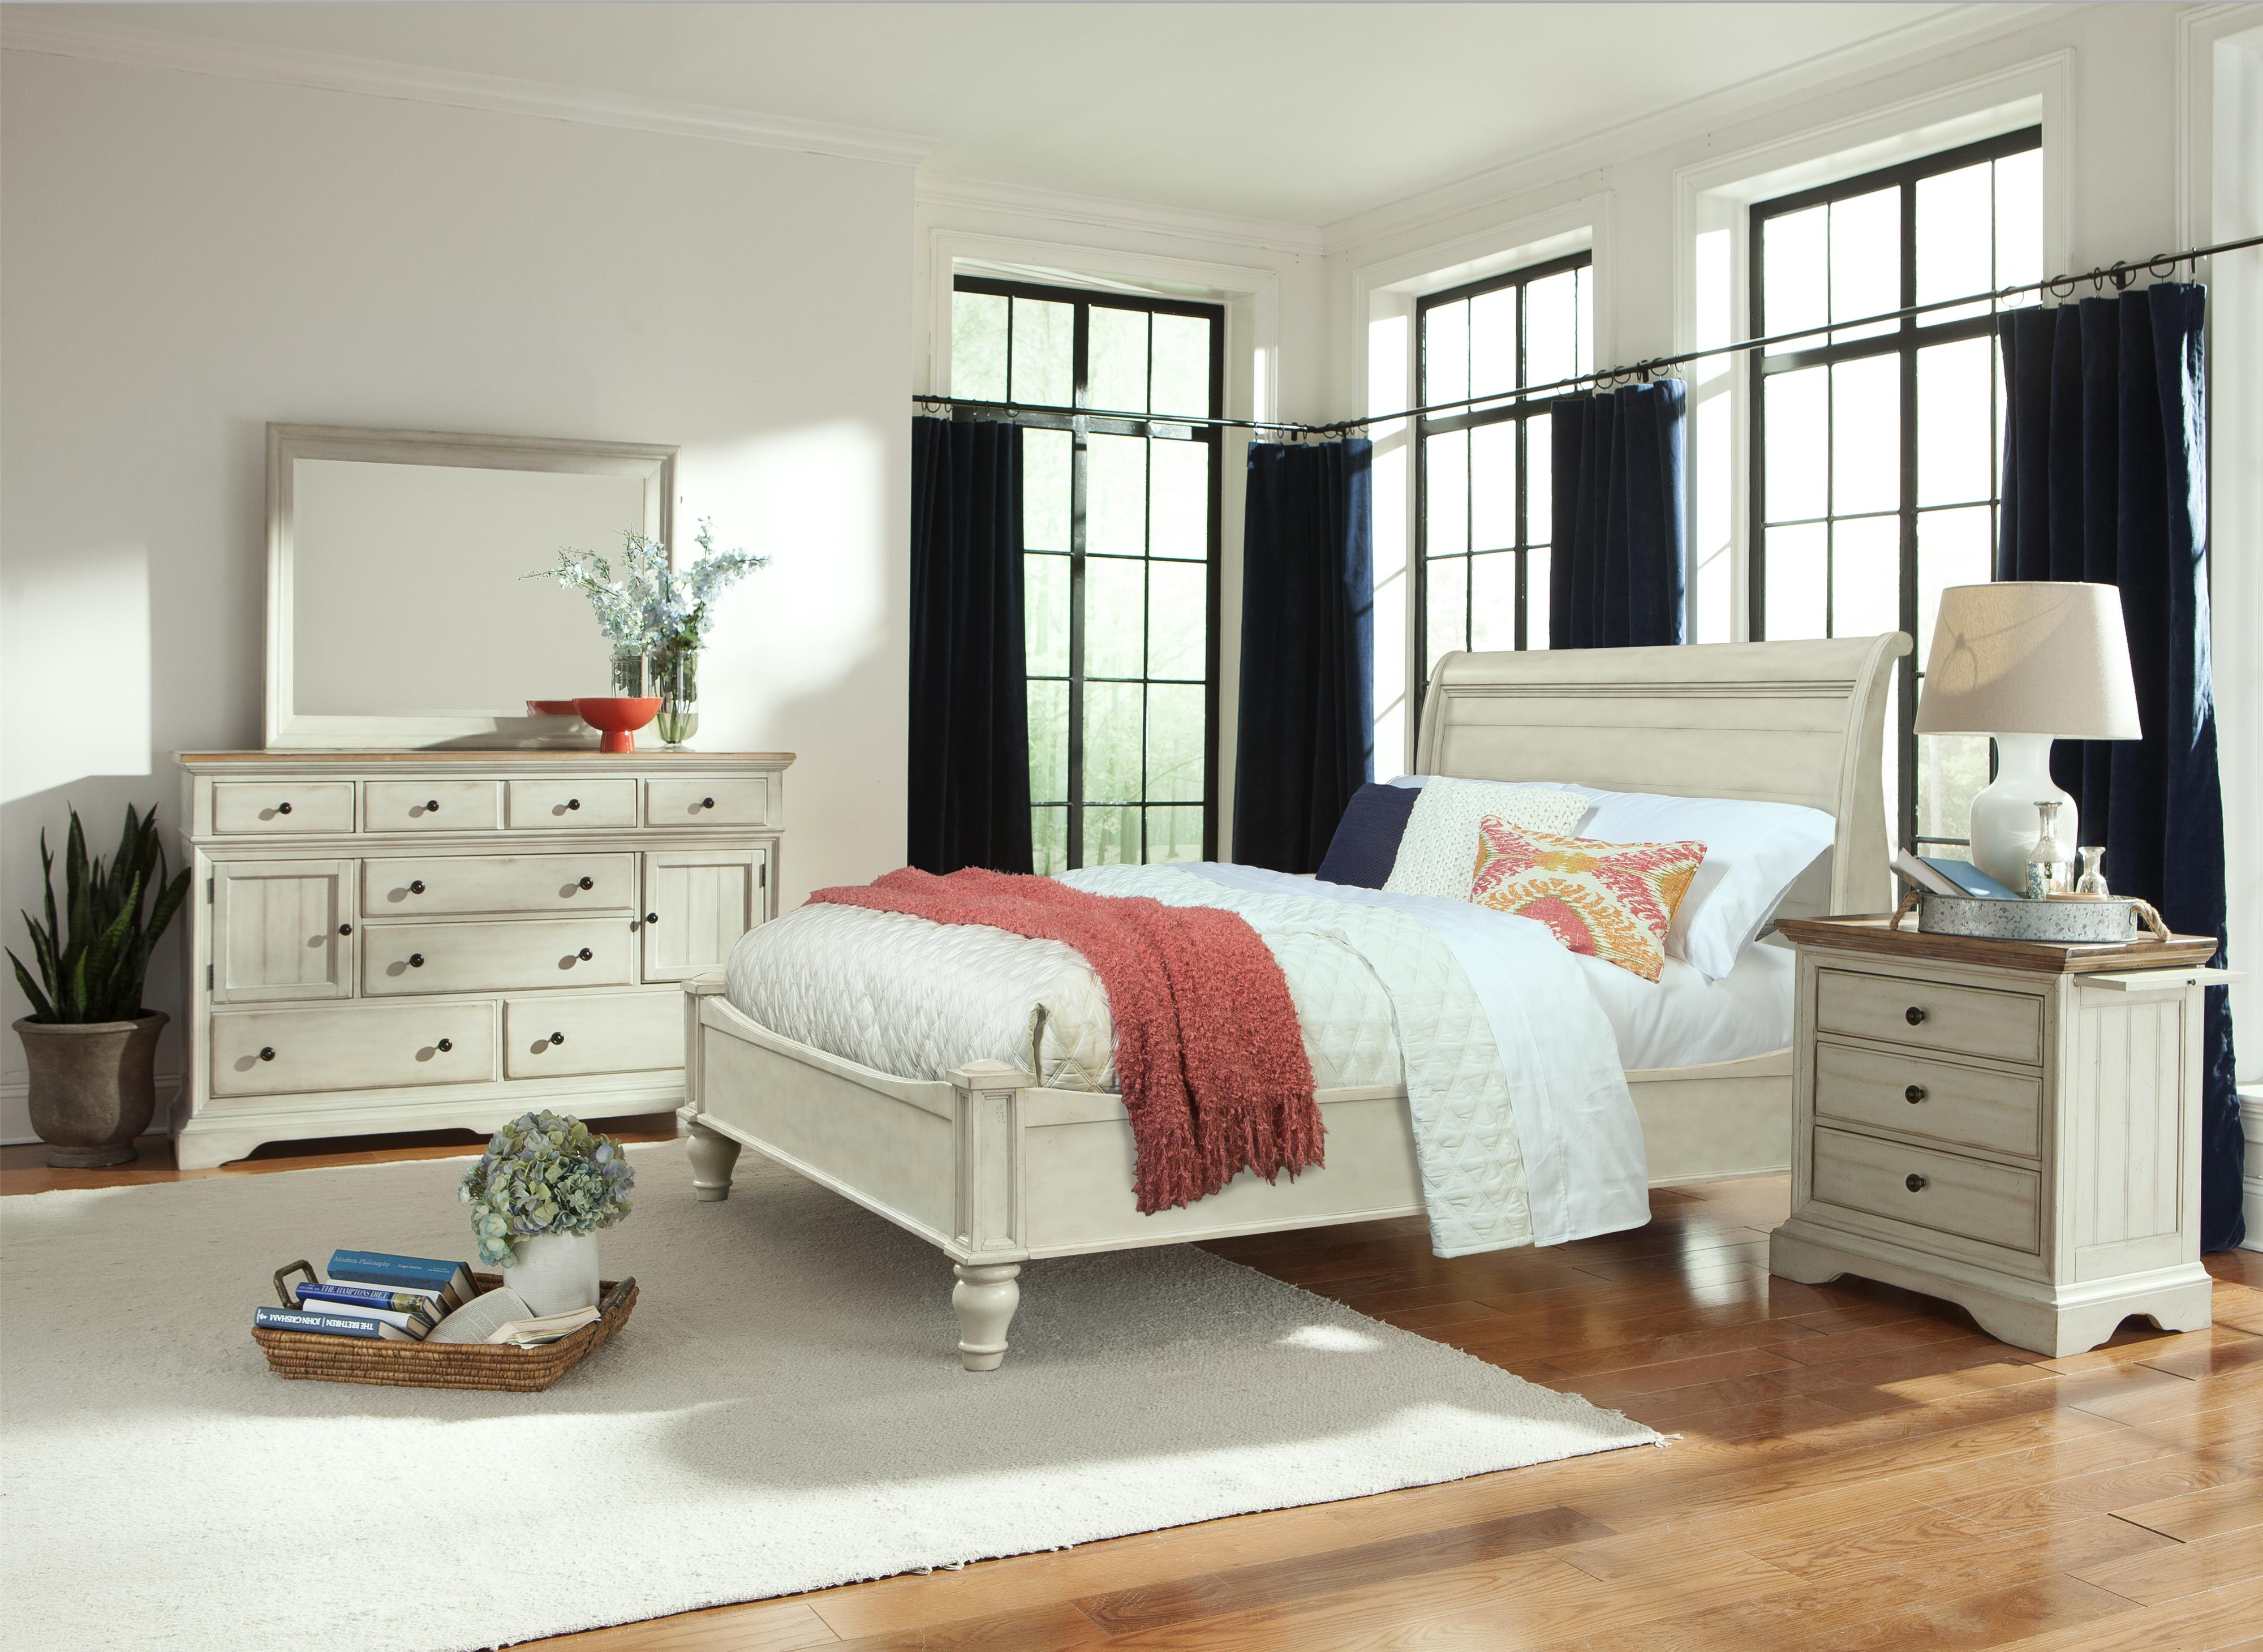 Cresent Fine Furniture Cottage Queen Bedroom Group - Item Number: 201 Q Bedroom Group 1